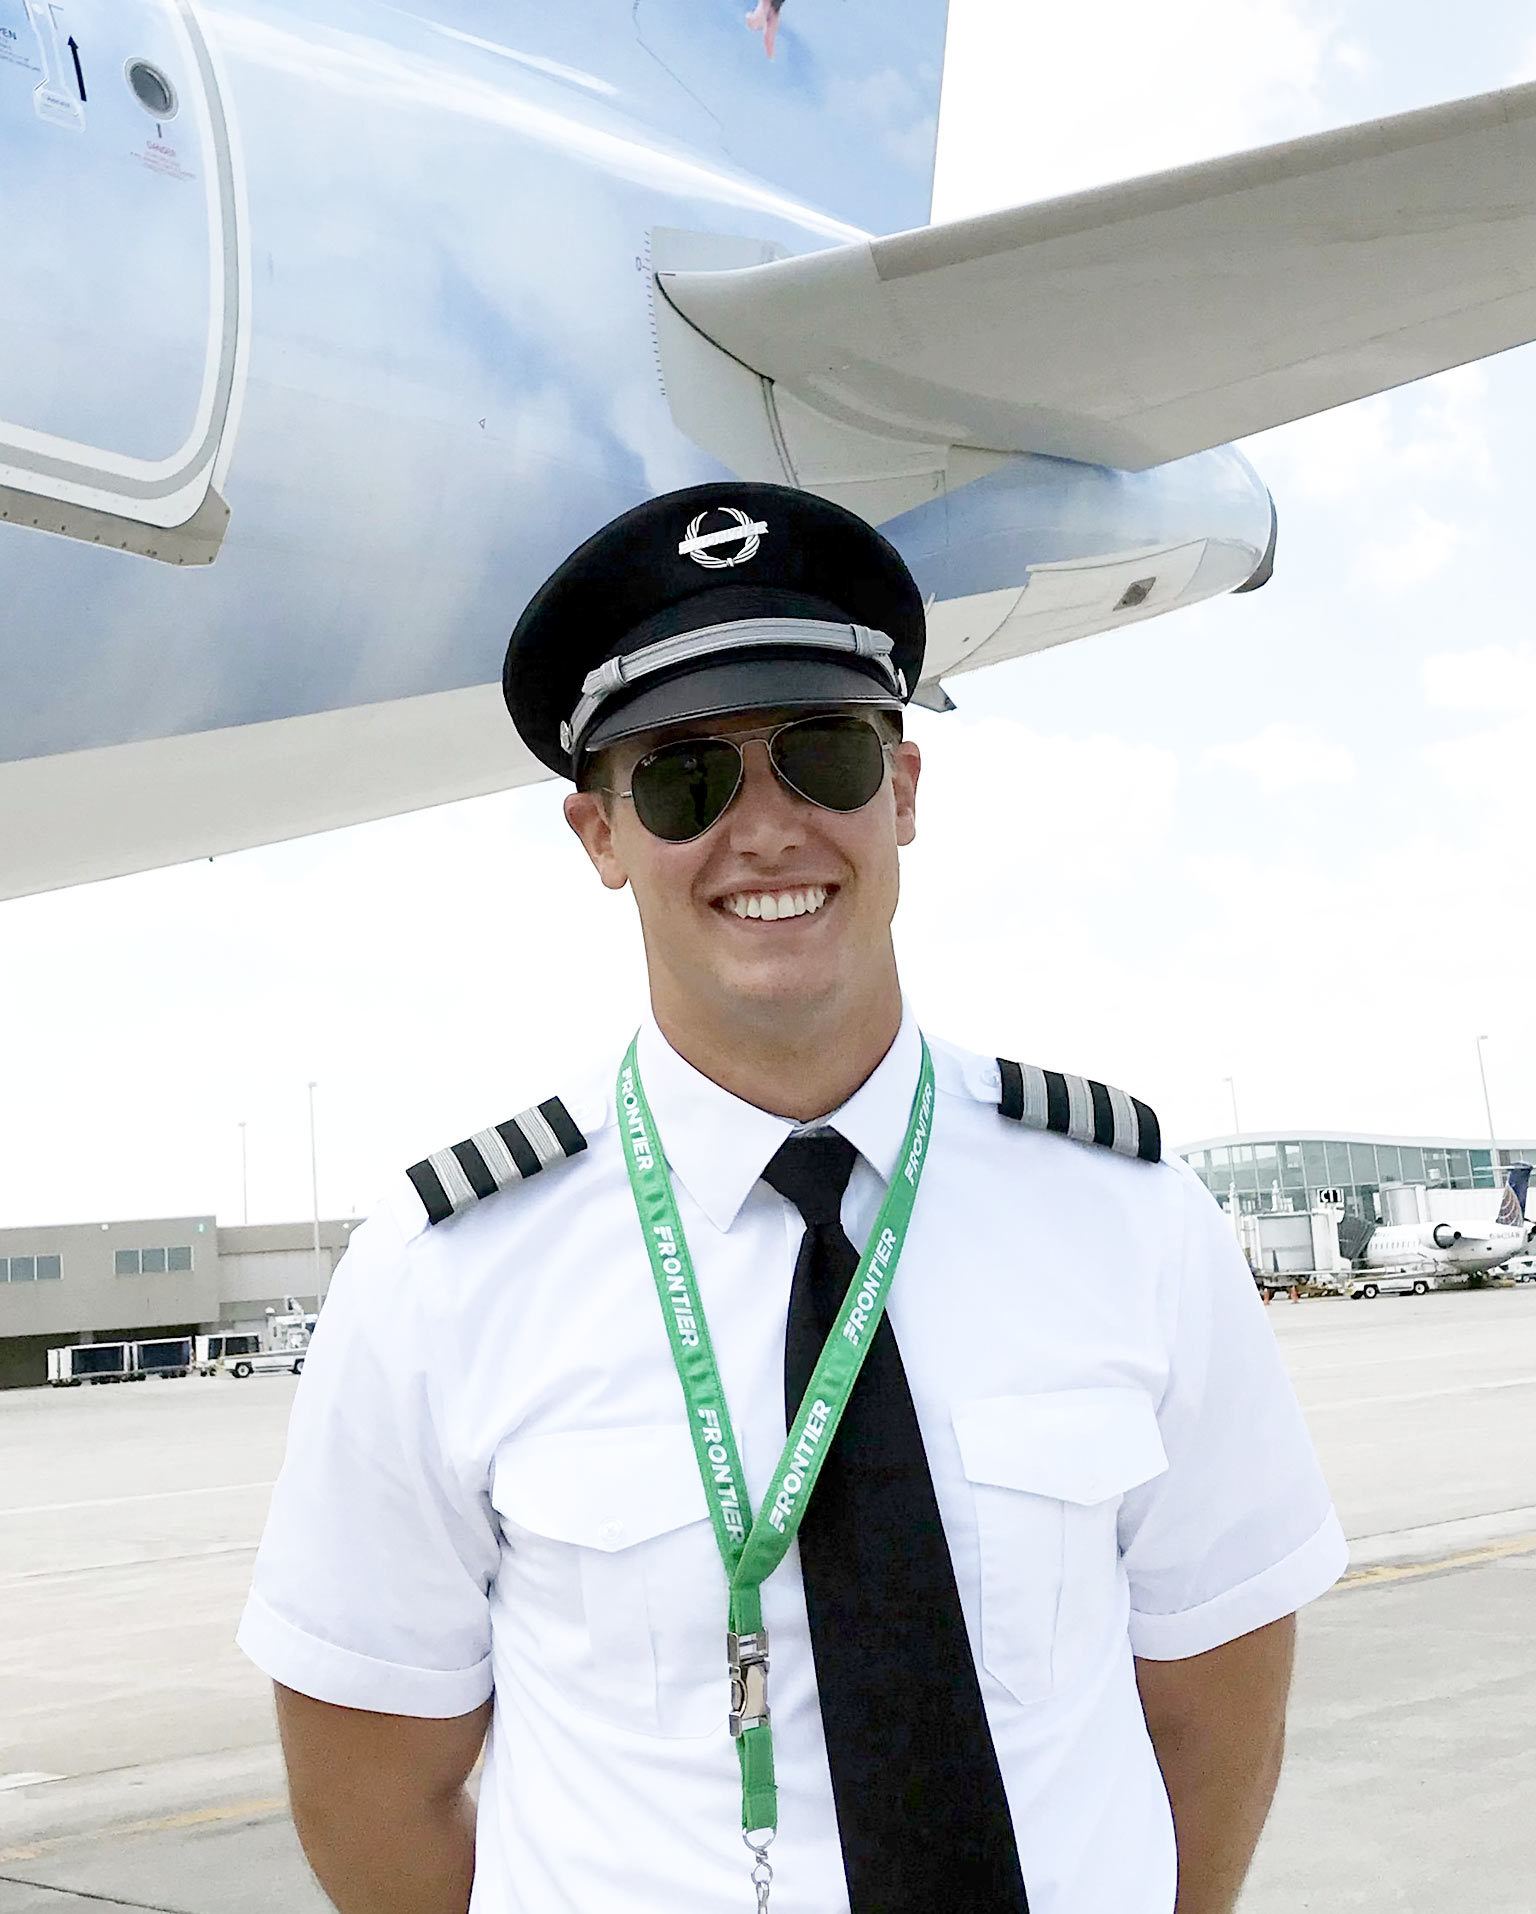 First Officer Walter Copeland III was one of the first participants in the Frontier Direct Program with ATP Flight School